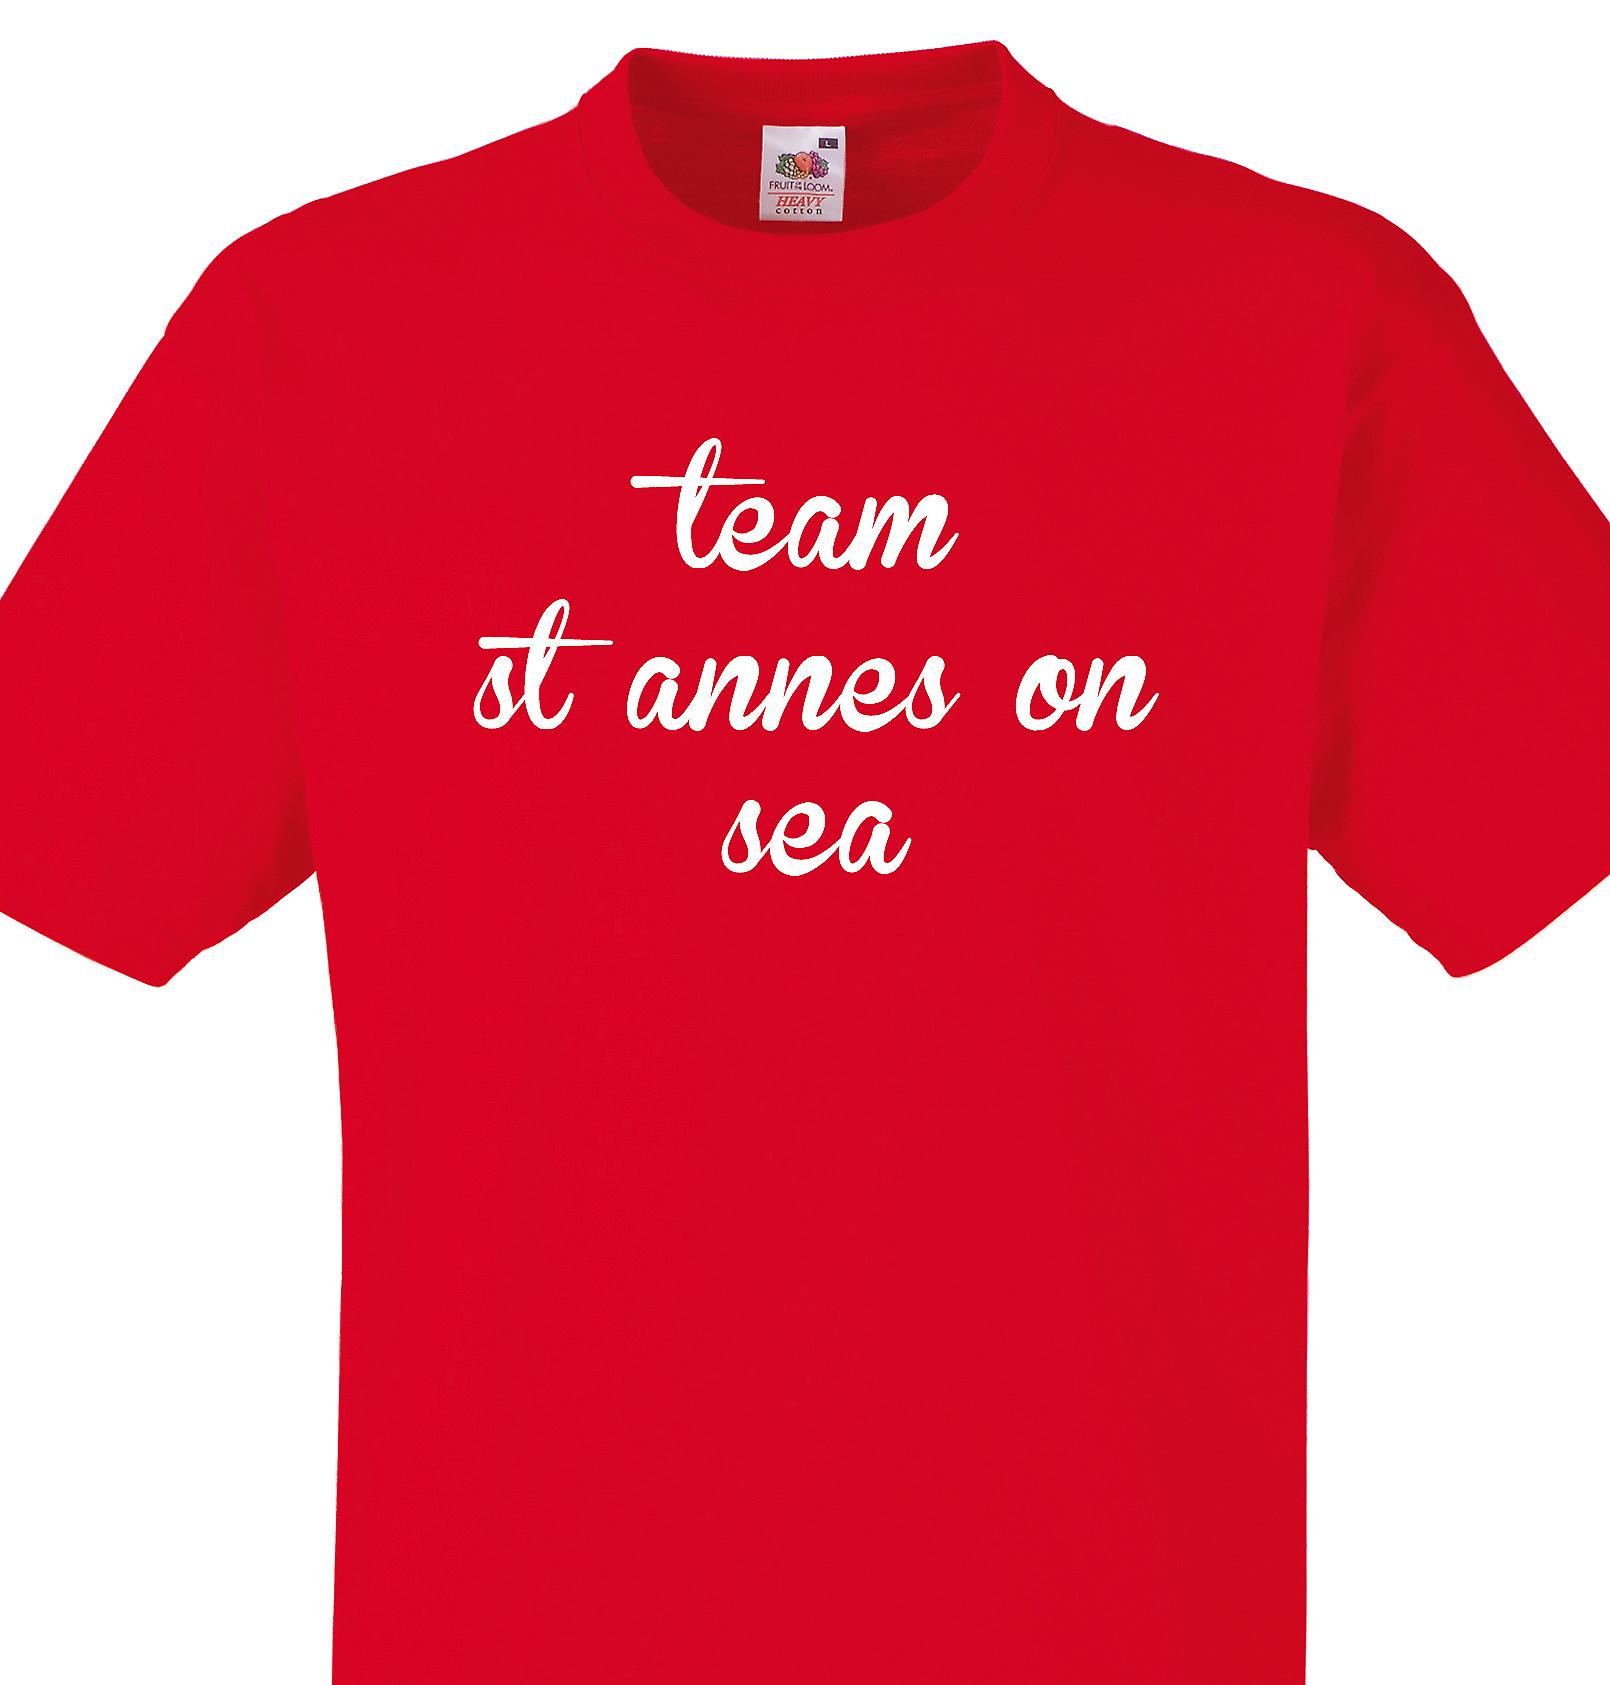 Team St annes on sea Red T shirt